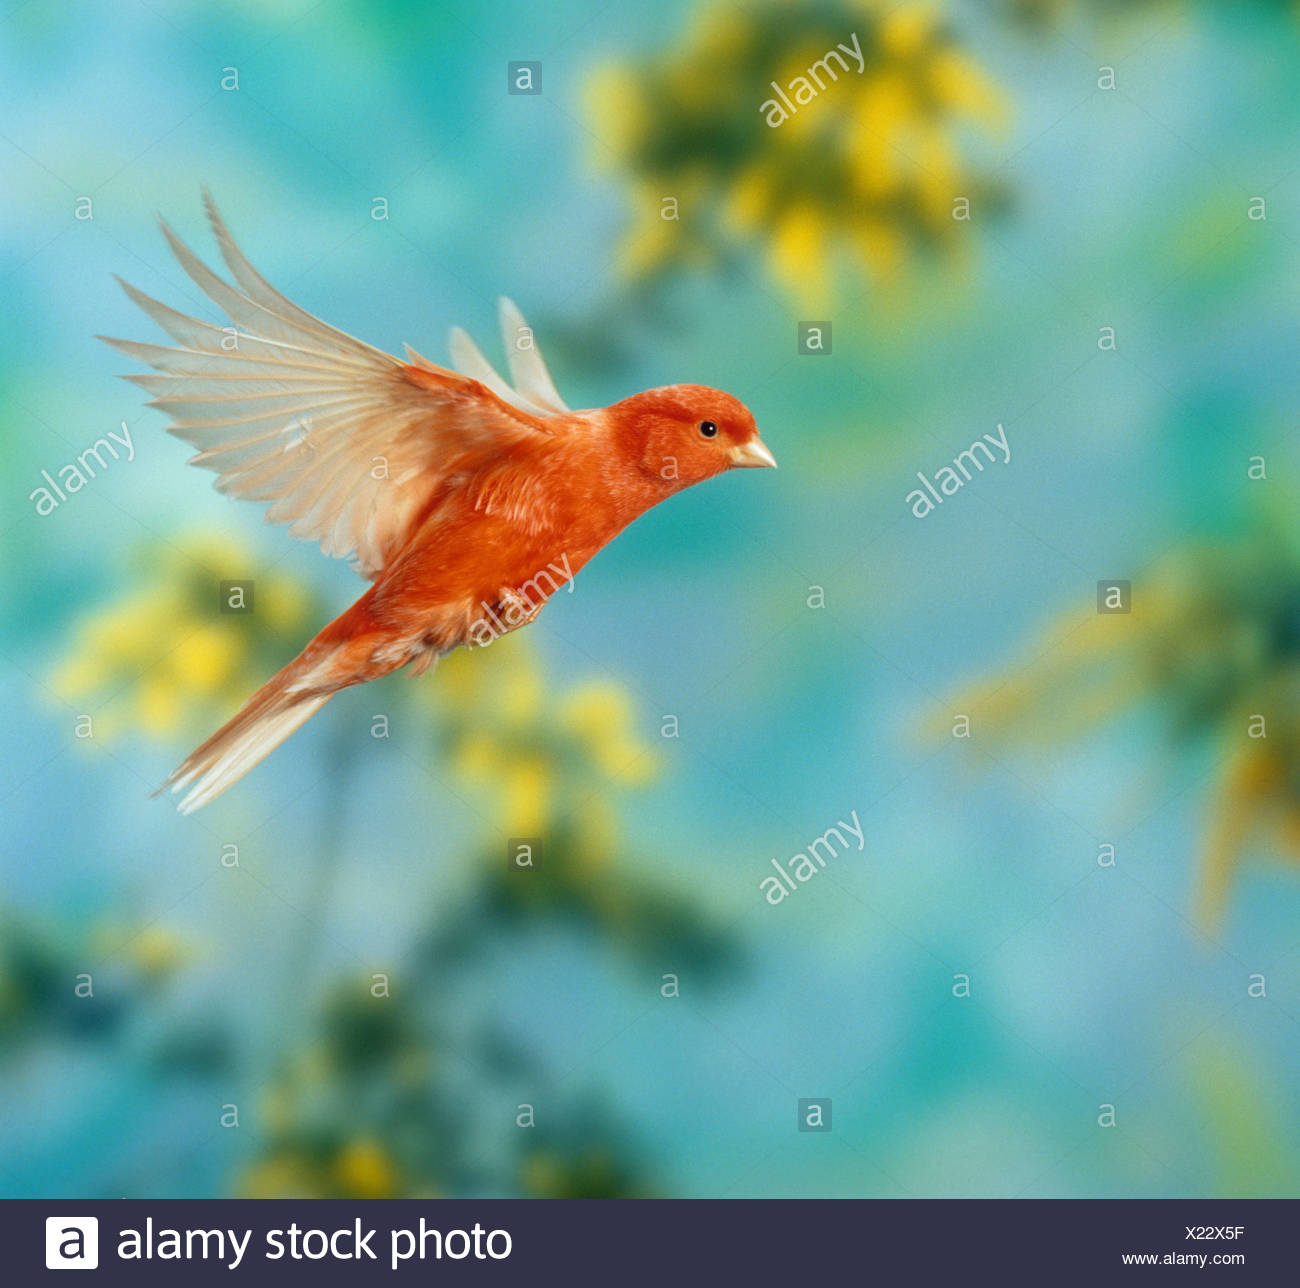 red canary - flying / Serinus canaria - Stock Image